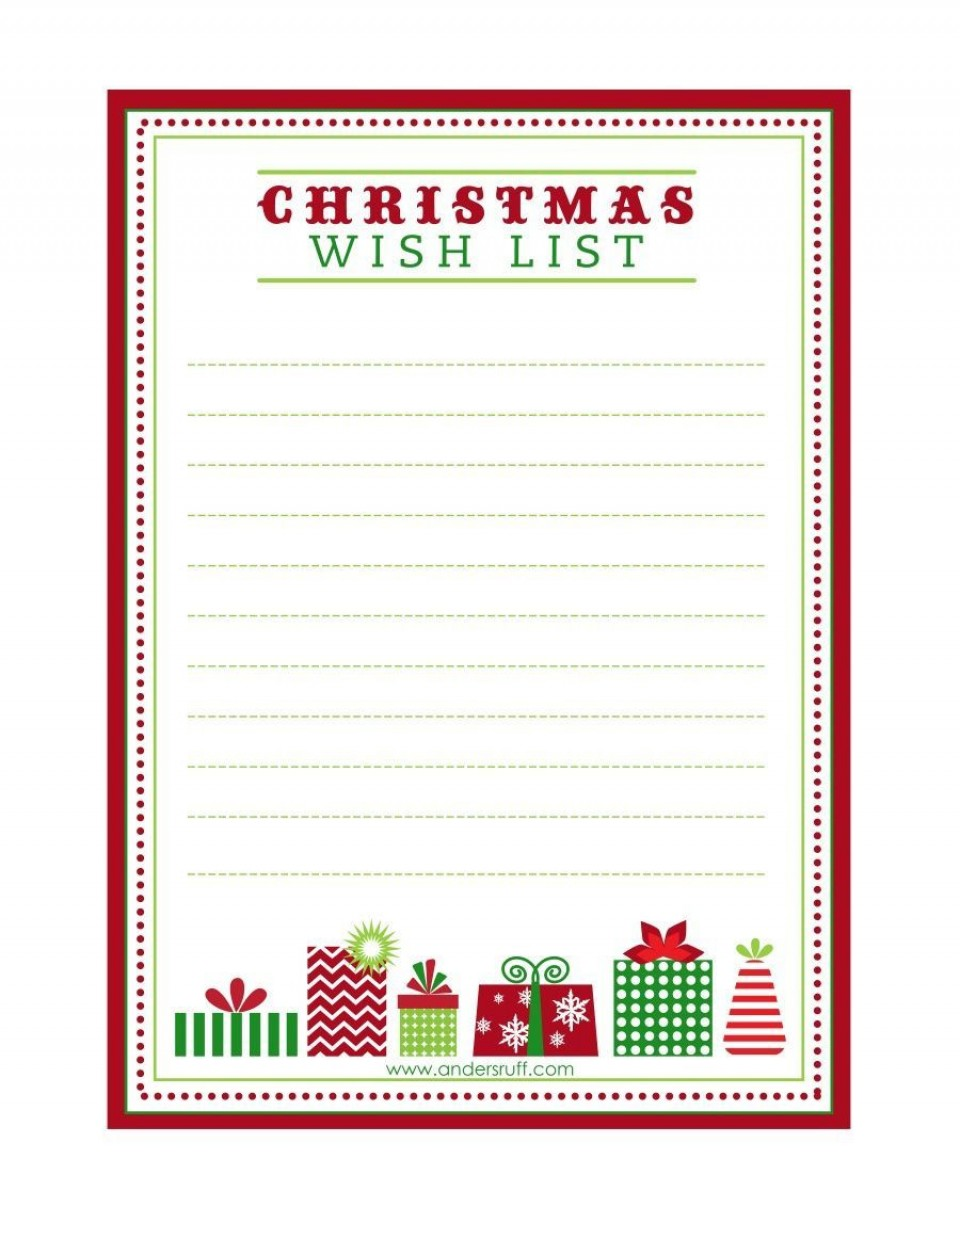 003 Exceptional Printable Wish List Template Highest Quality  Christma Free Pdf960